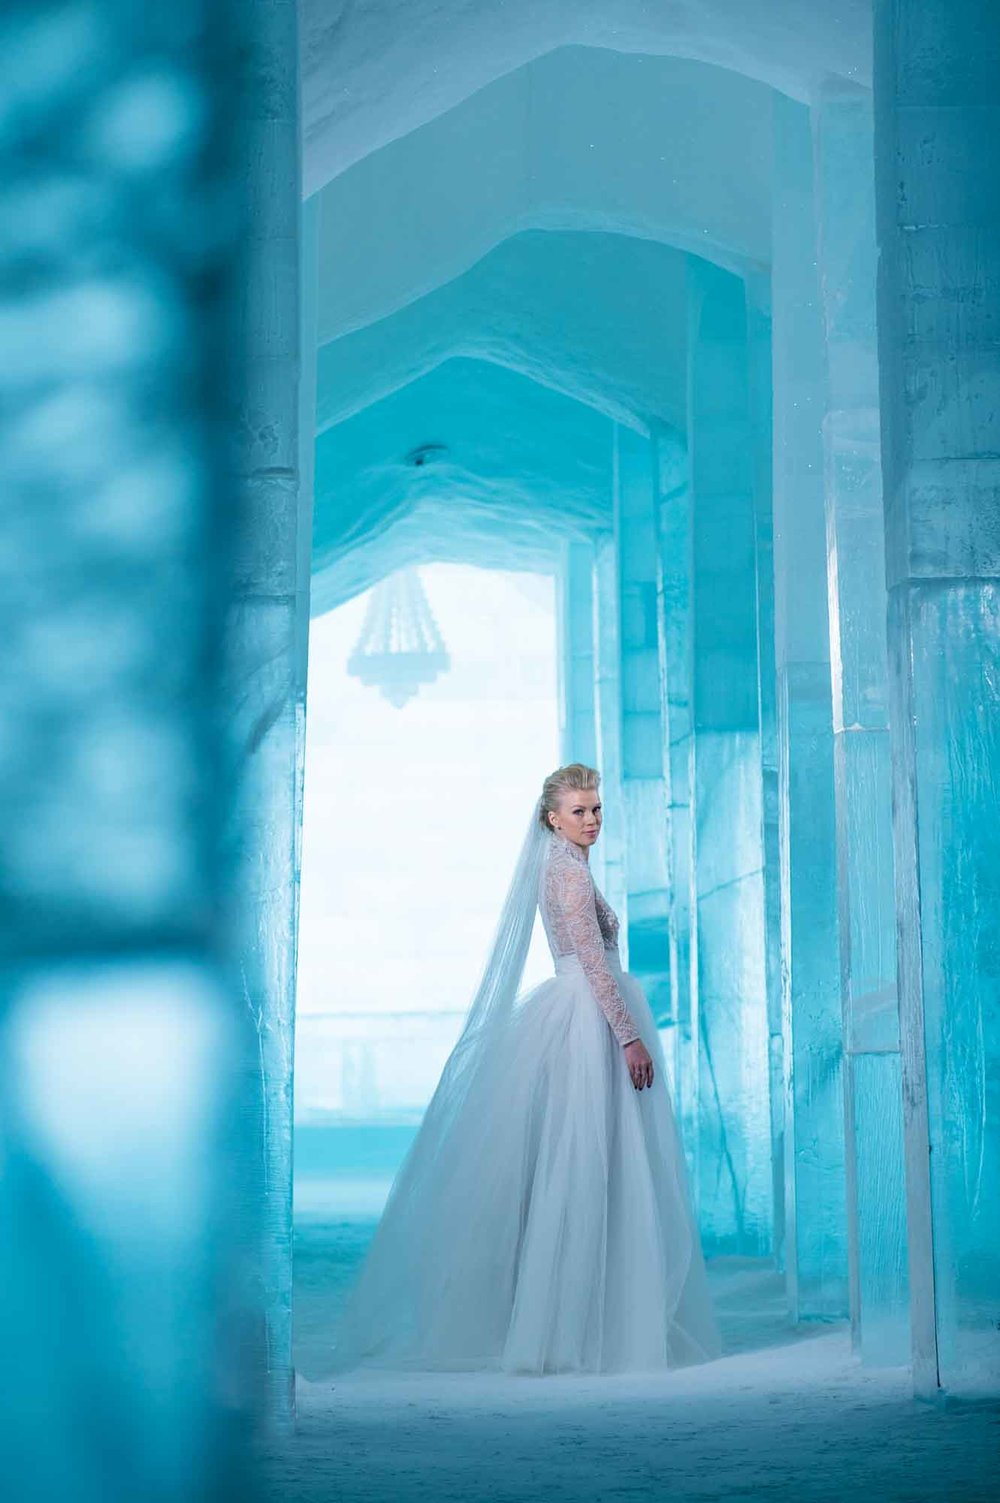 M & H - ICEHOTEL wedding - by Asaf Kliger (3 of 36).jpg